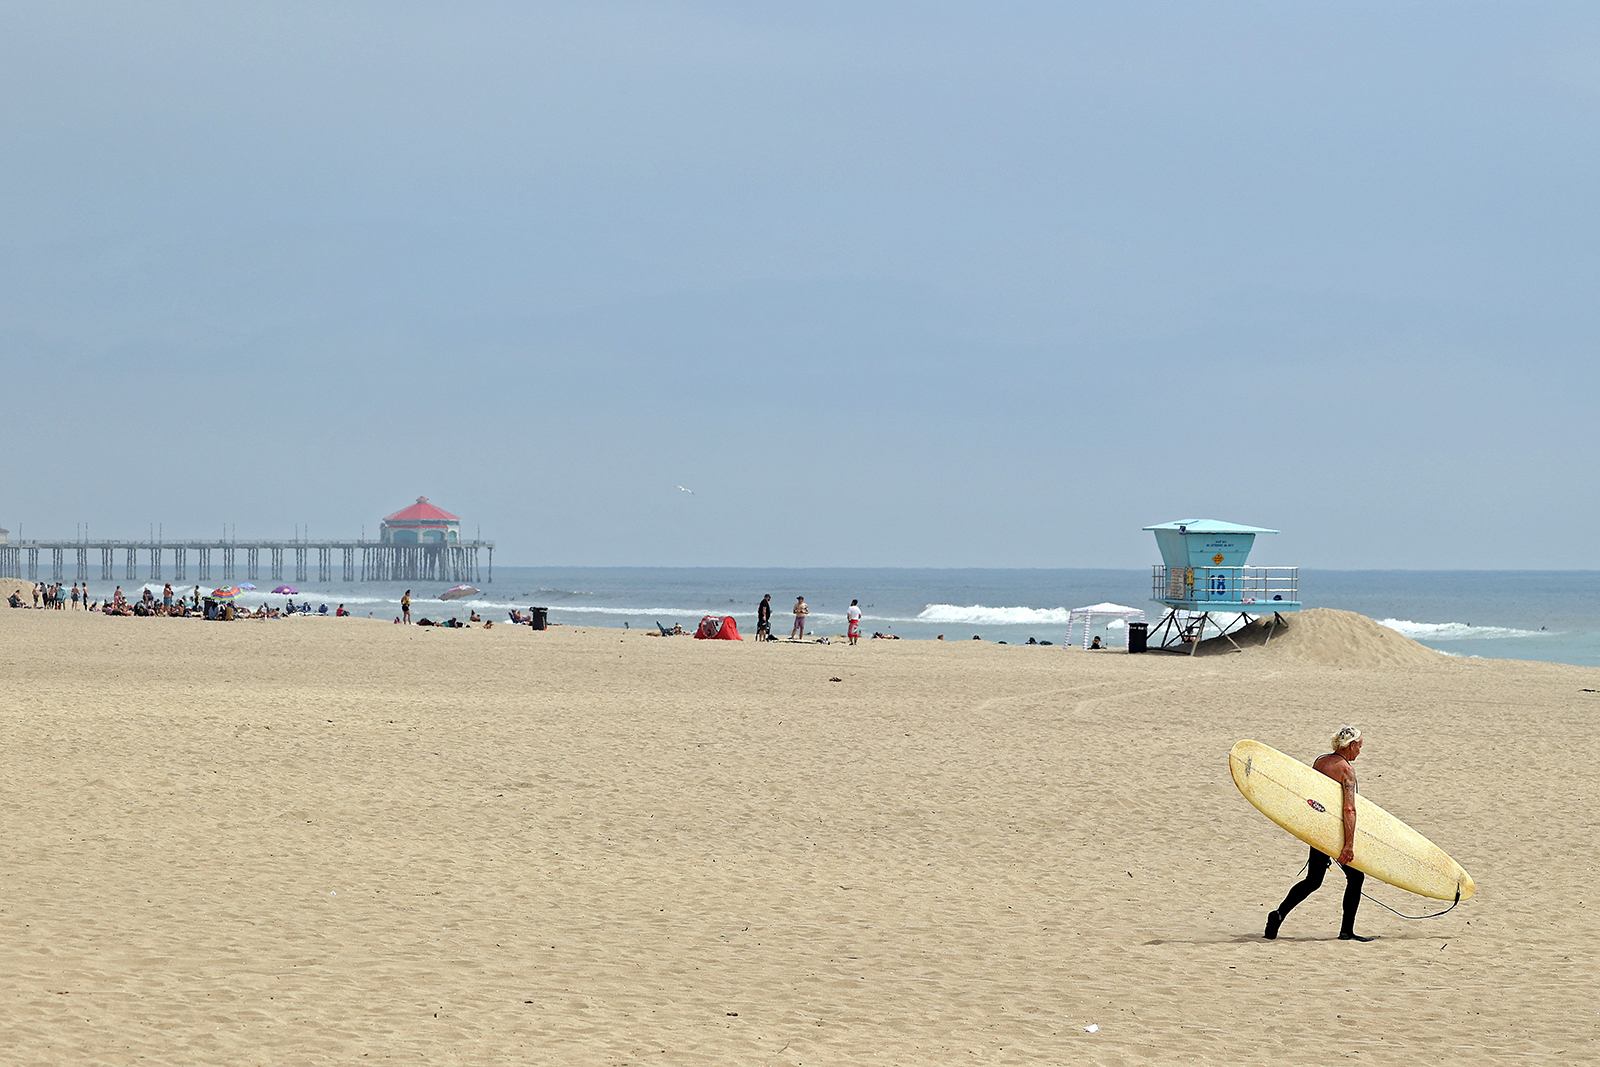 A surfer walks on the beach in front of the pier on April 30, in Huntington Beach, California.